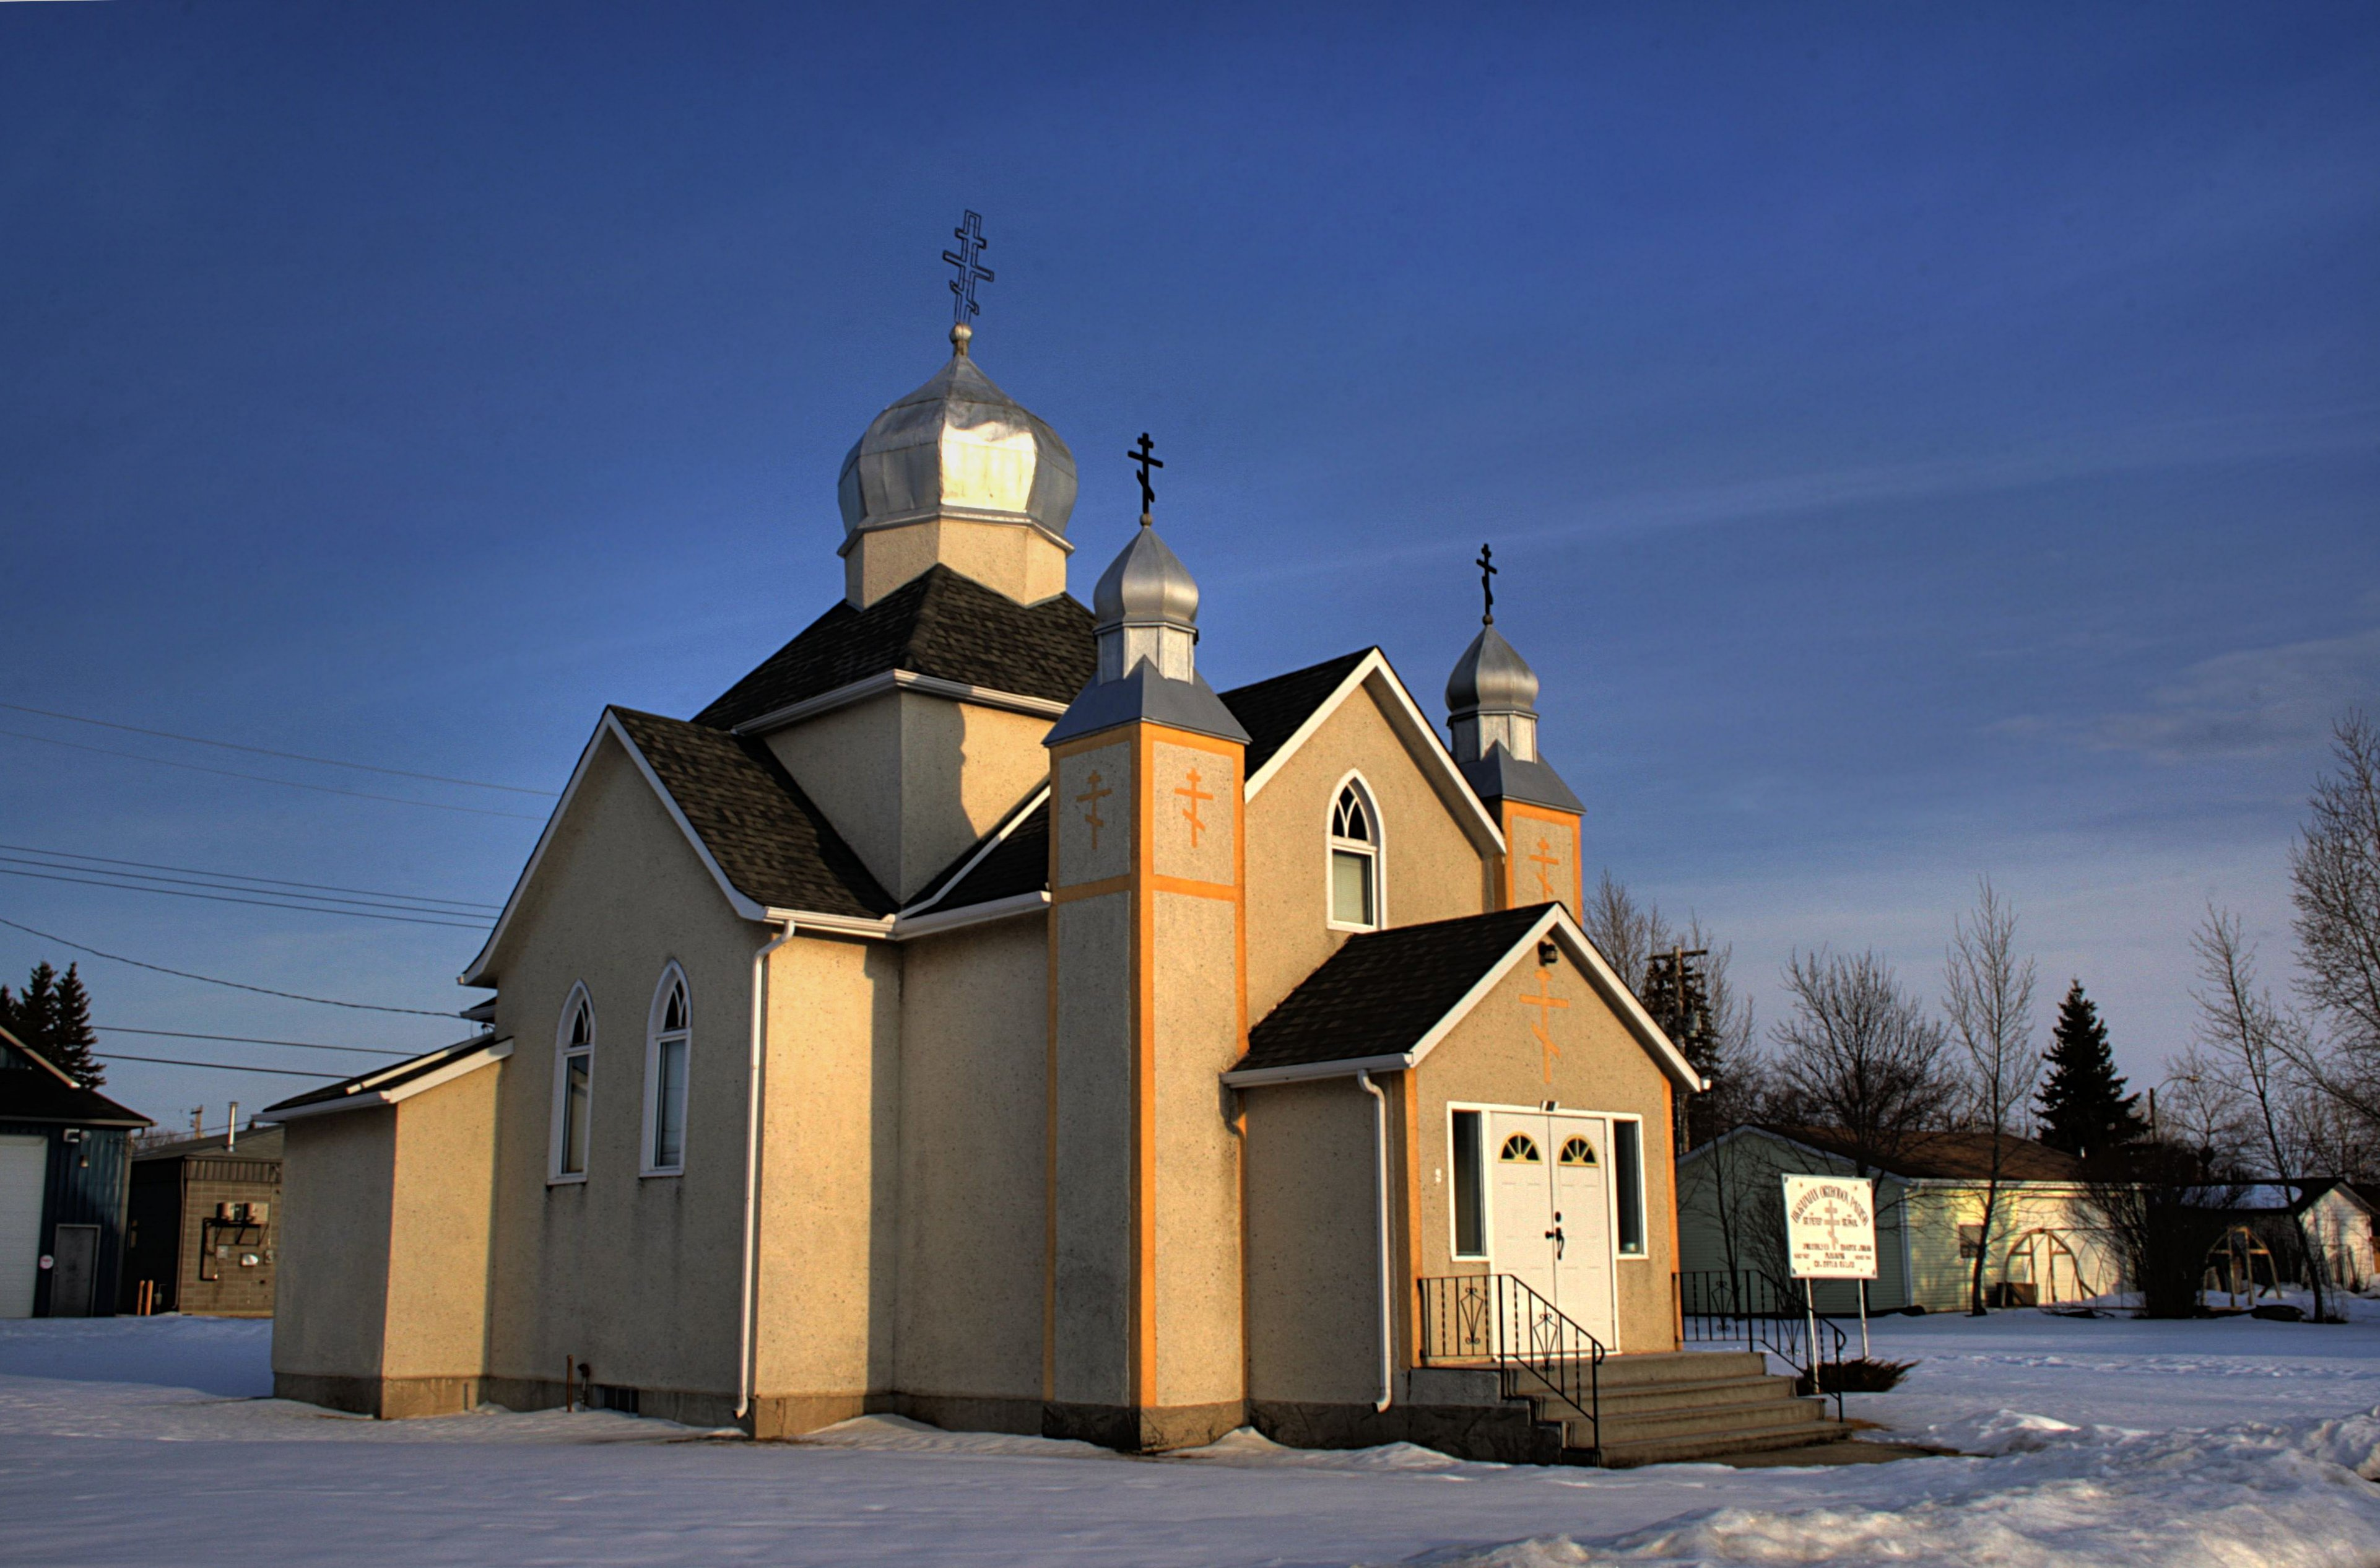 File:Ukrainian Orthodox Church Thorsby Alberta Canada 01C.jpg ...